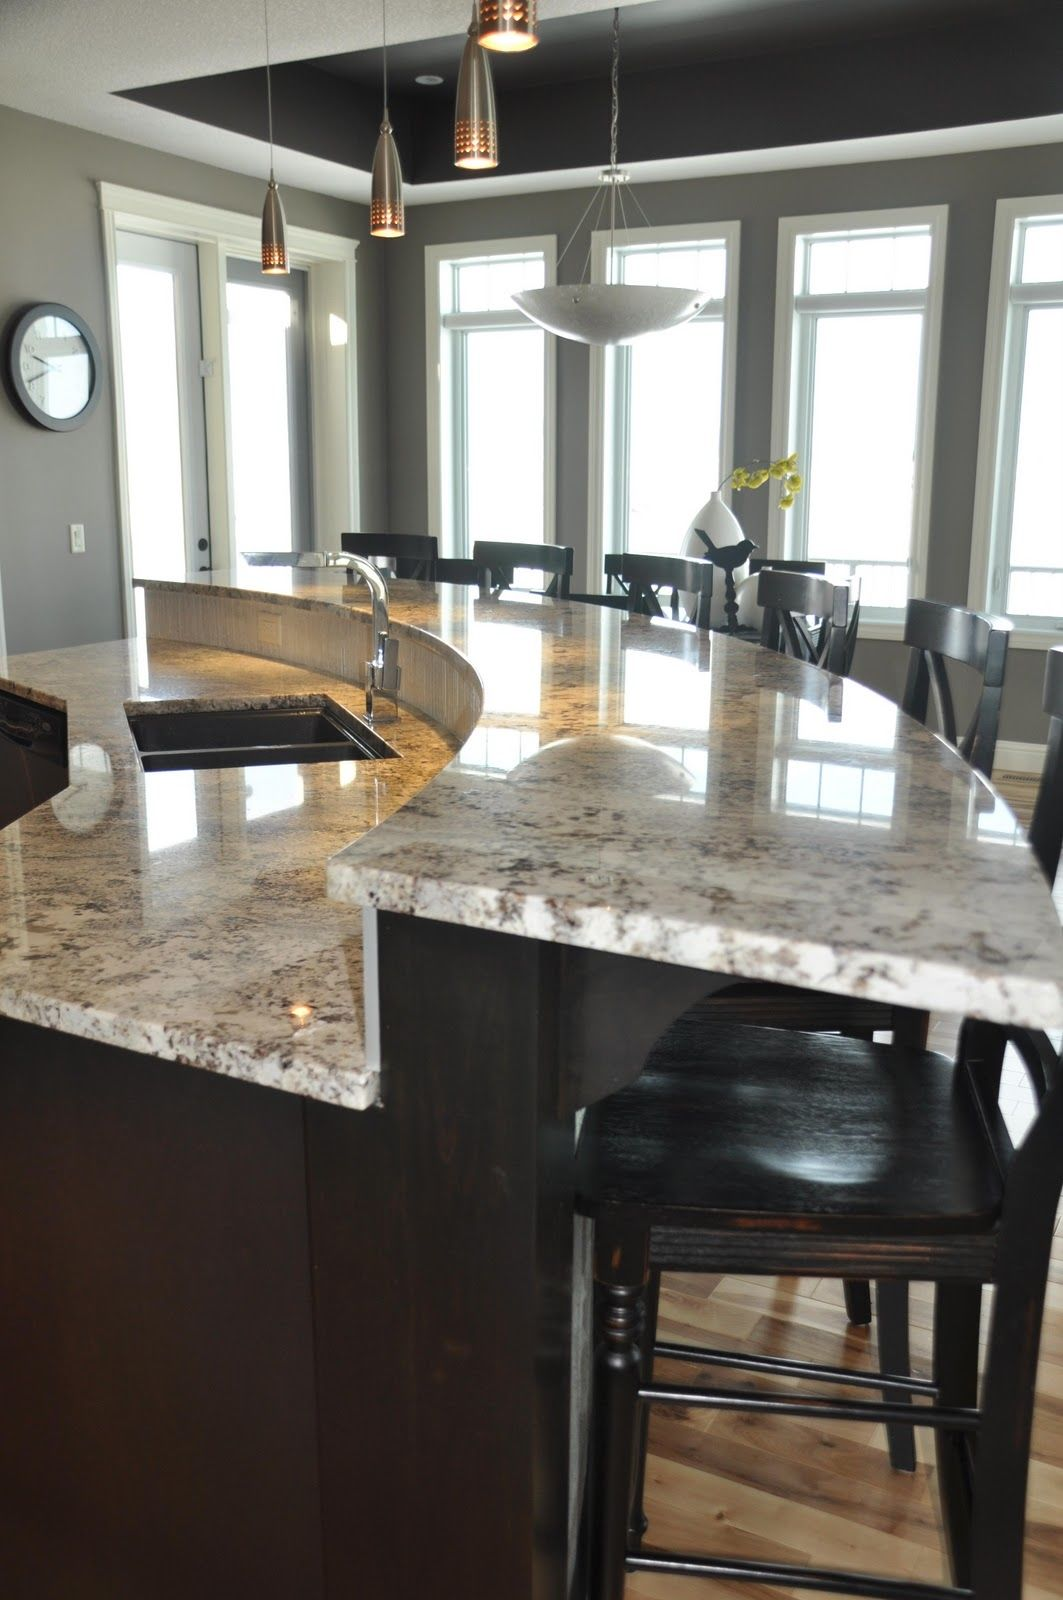 Curved Raised Eating Bar Pictures, Photos, and Images for ... on Modern:0Bjn4Cem9Be= Kitchen Counter  id=83544